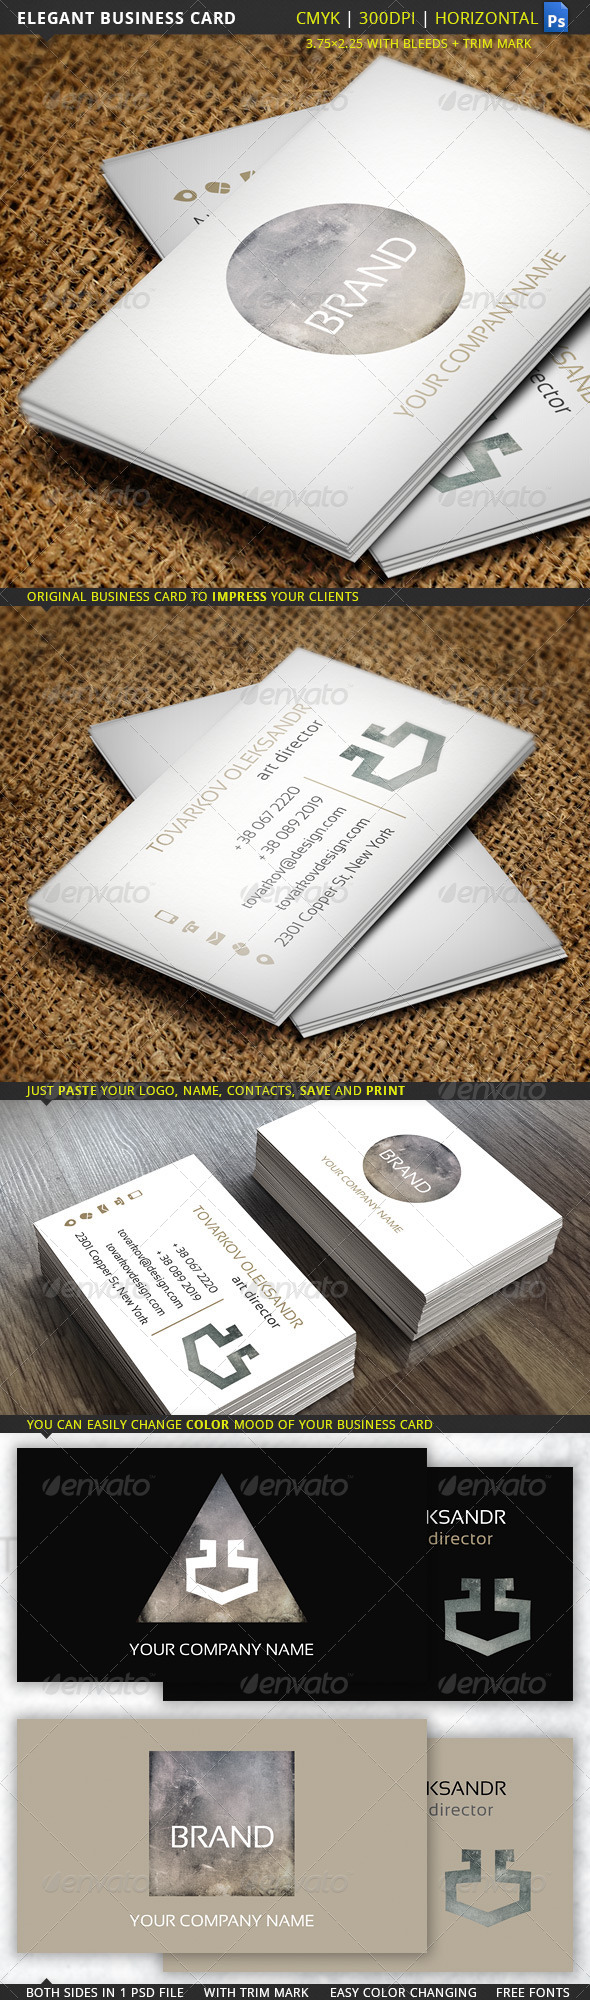 GraphicRiver Elegant Business Card 5636273